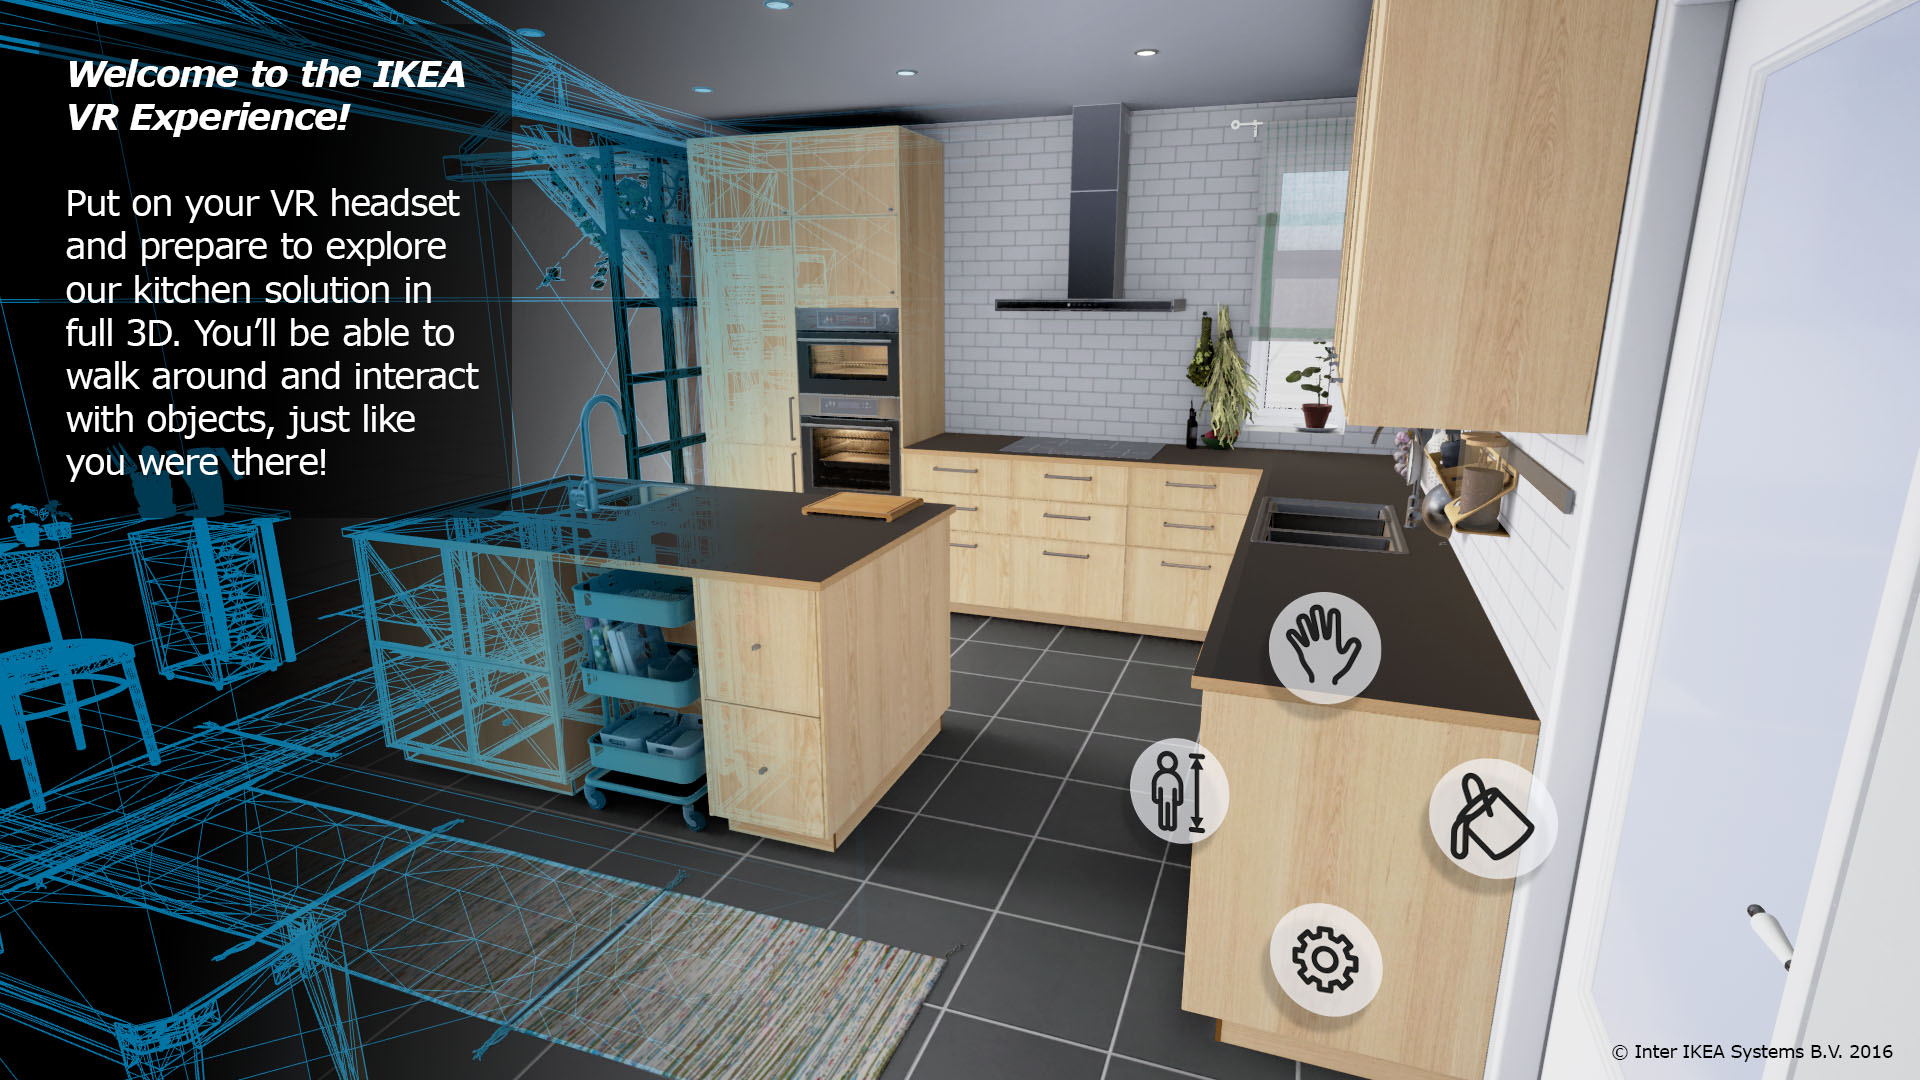 IKEA VR Experience on Steam